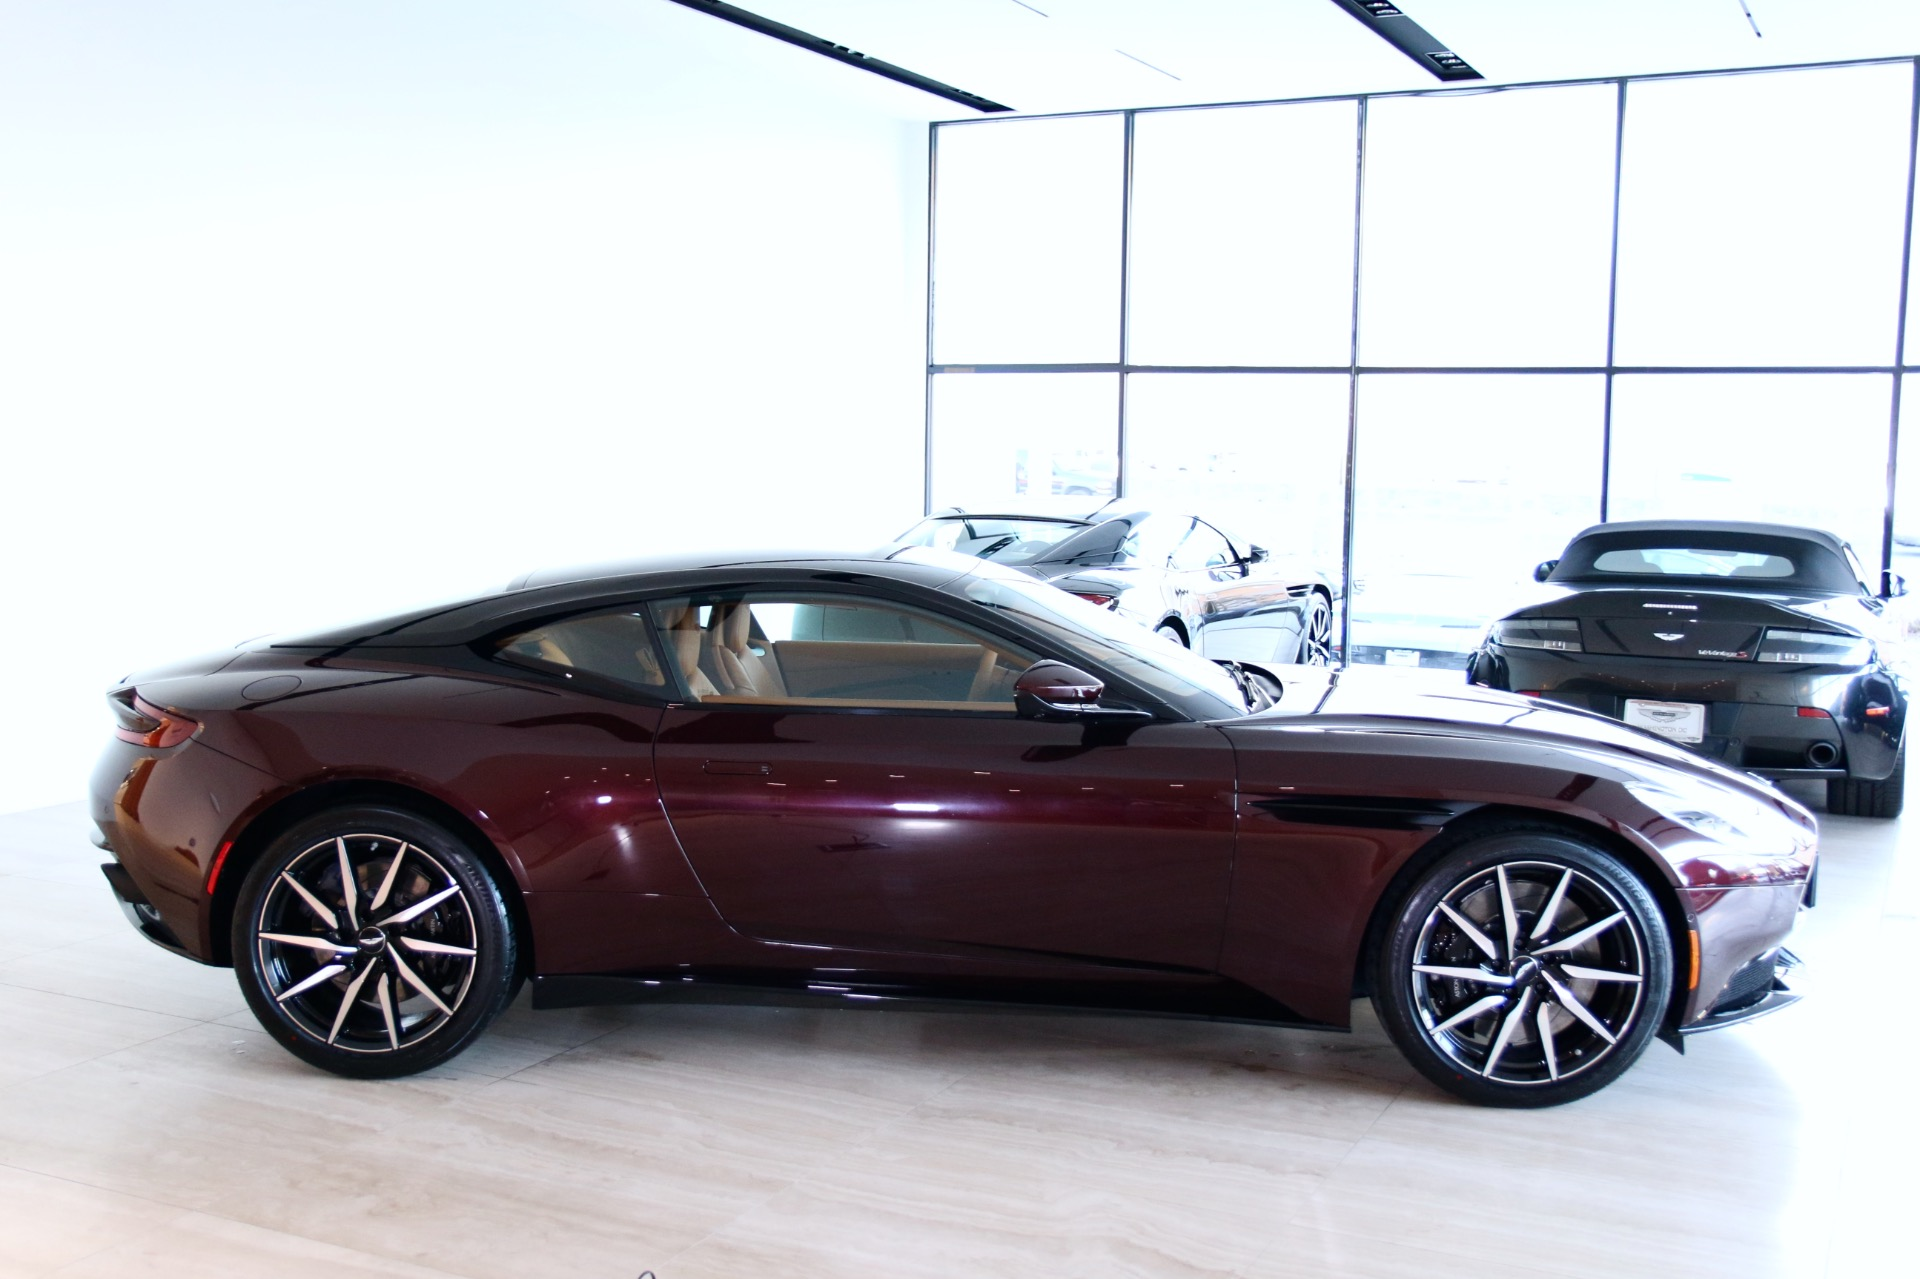 2018 Aston Martin Db11 V12 Stock 8n03445 For Sale Near Vienna Va Va Aston Martin Dealer For Sale In Vienna Va 8n03445 Exclusive Automotive Group